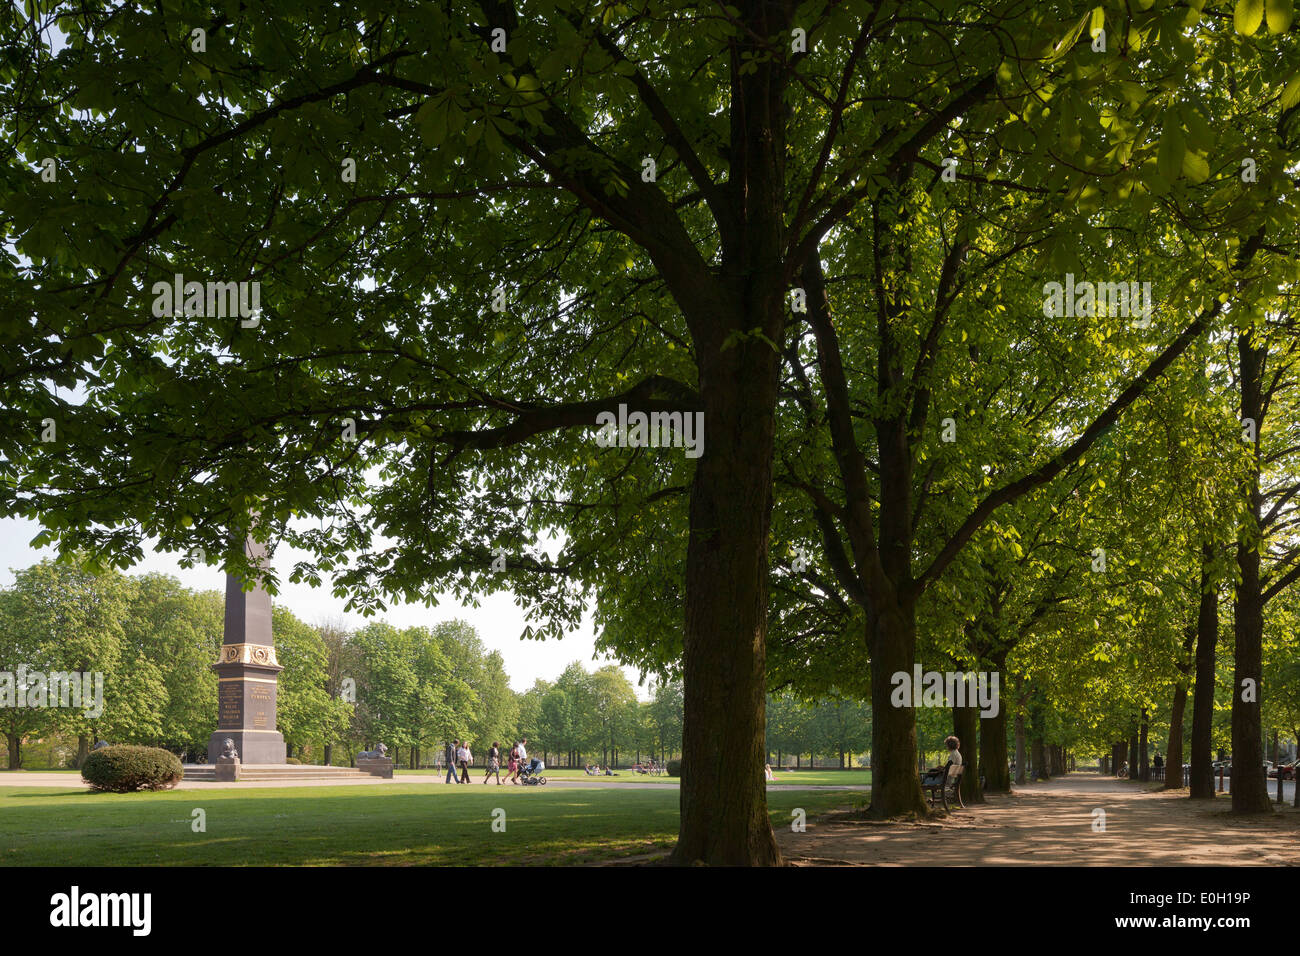 Monument with park lawn surrounded by chestnut trees, Lion wall, Green belt Brunswick, Lower Saxony, Germany - Stock Image